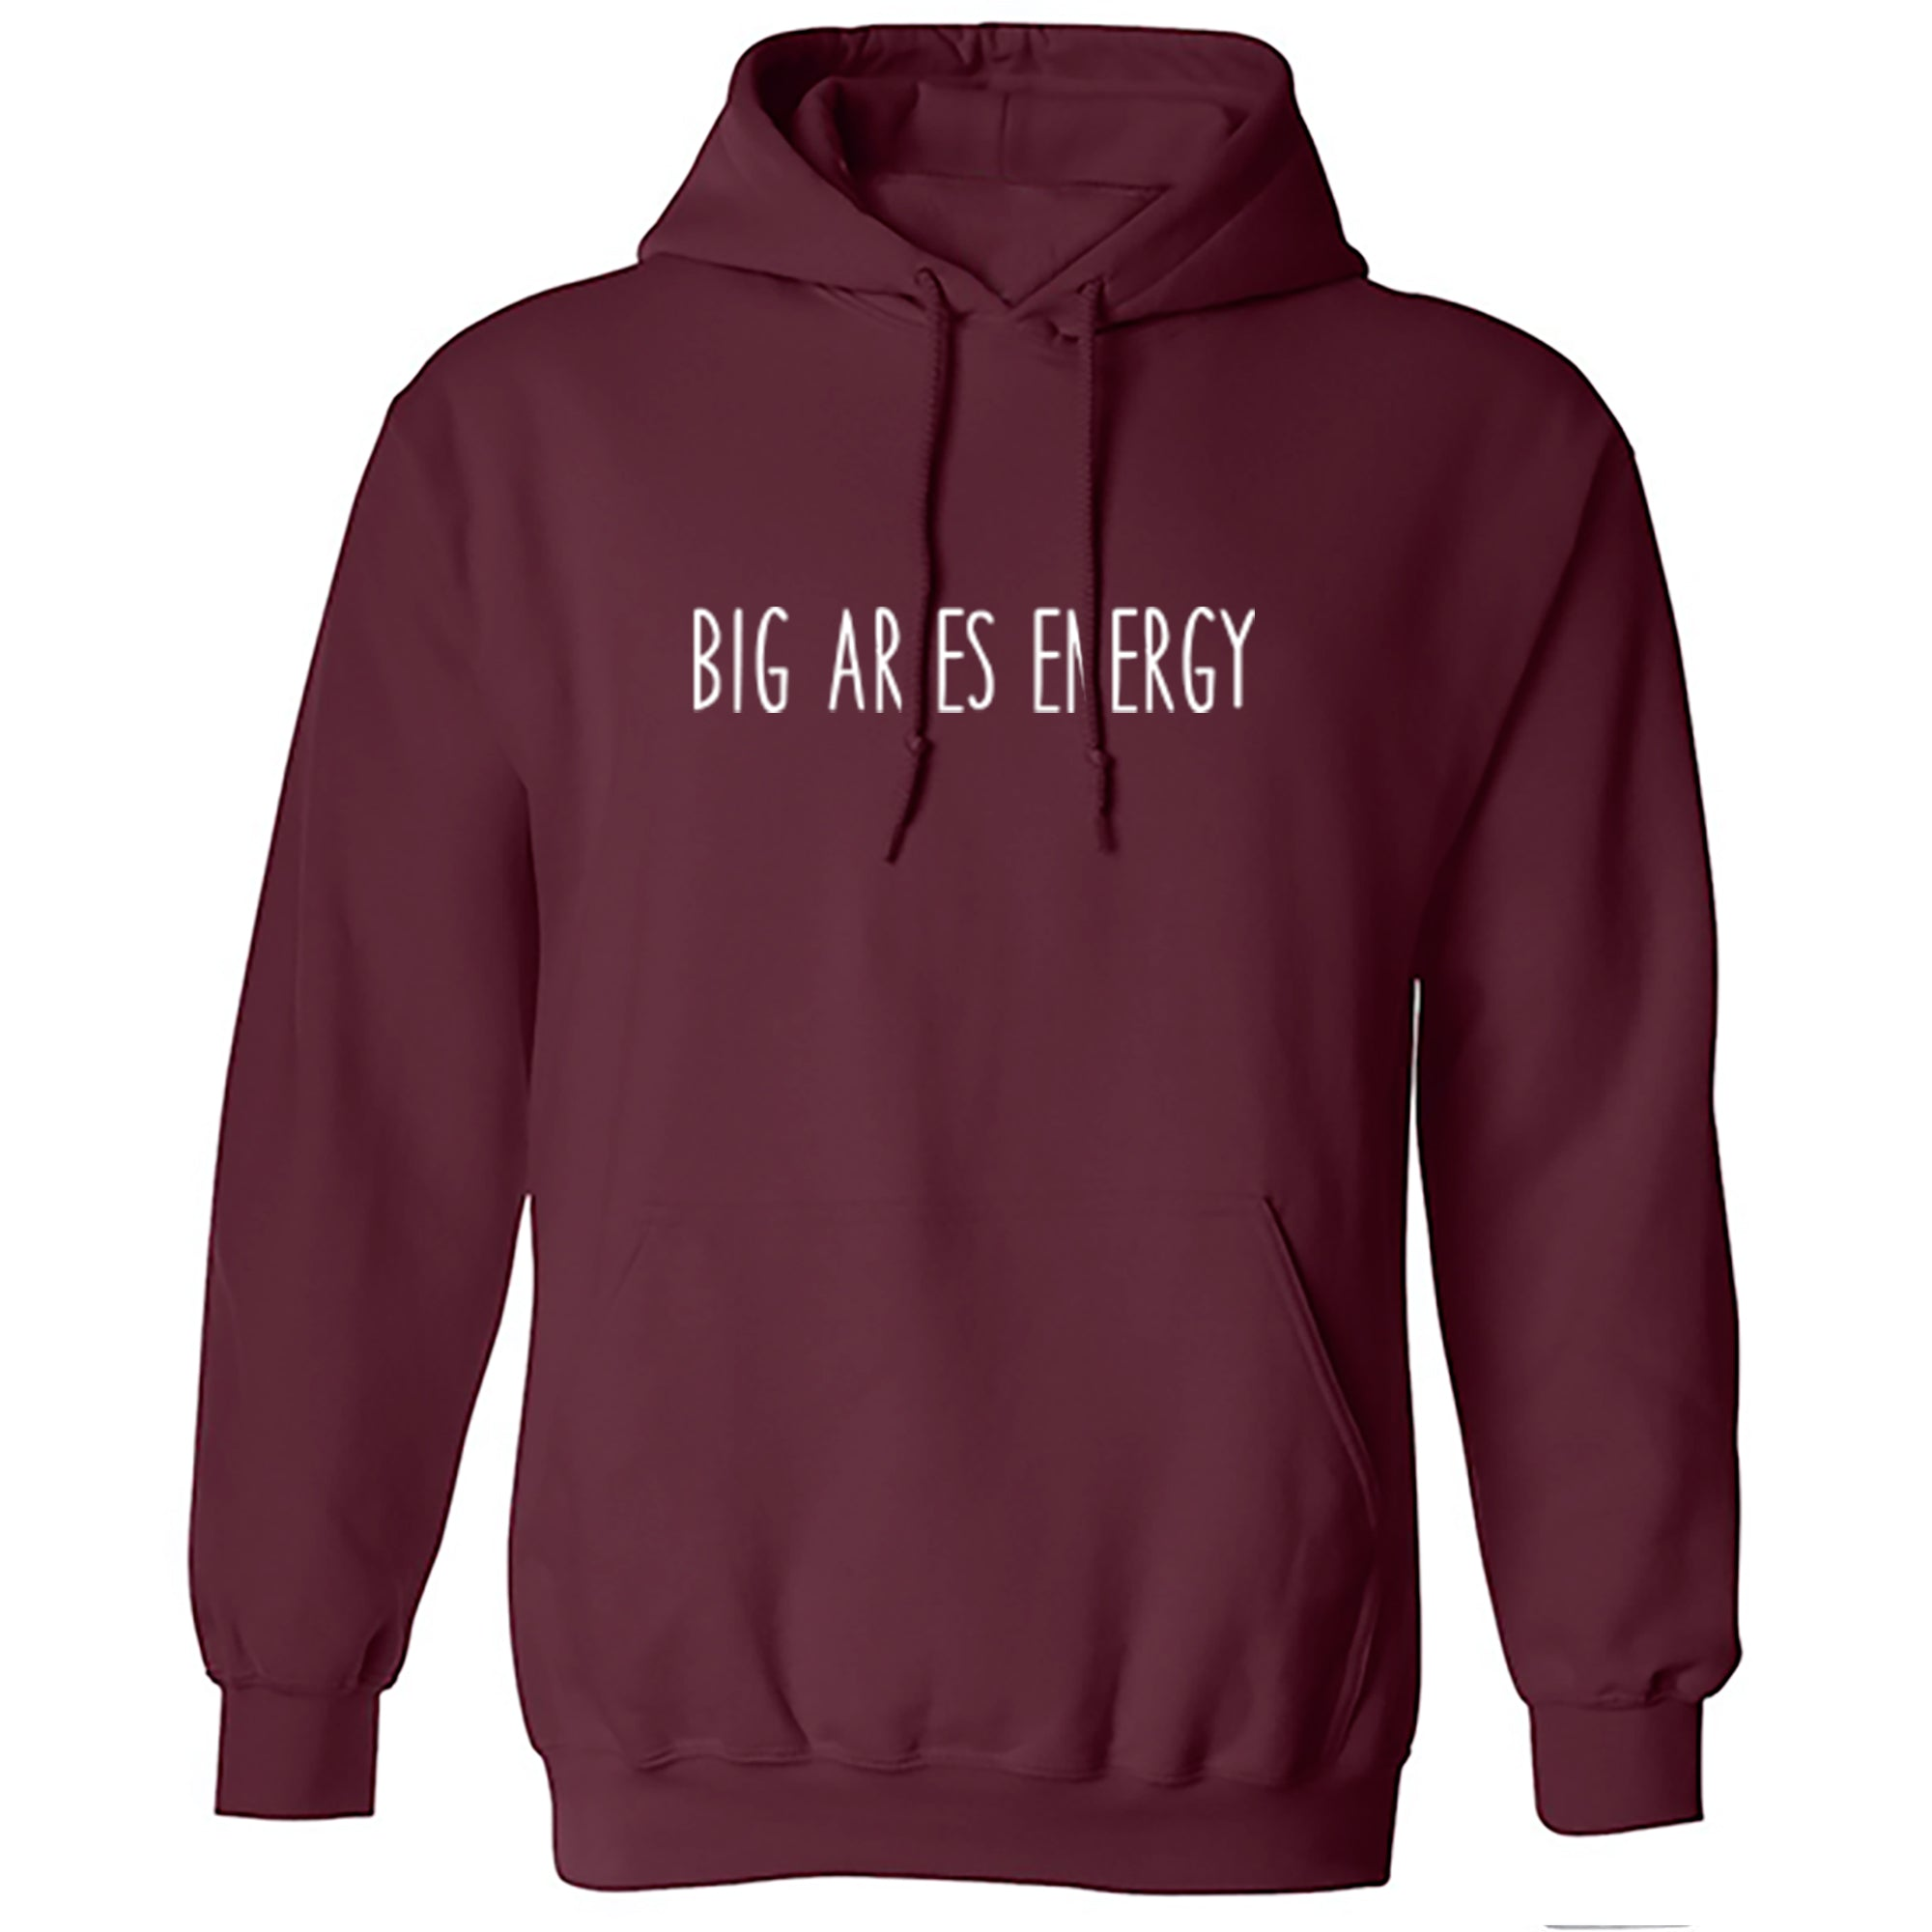 Big Aries Energy Unisex Hoodie S1011 - Illustrated Identity Ltd.